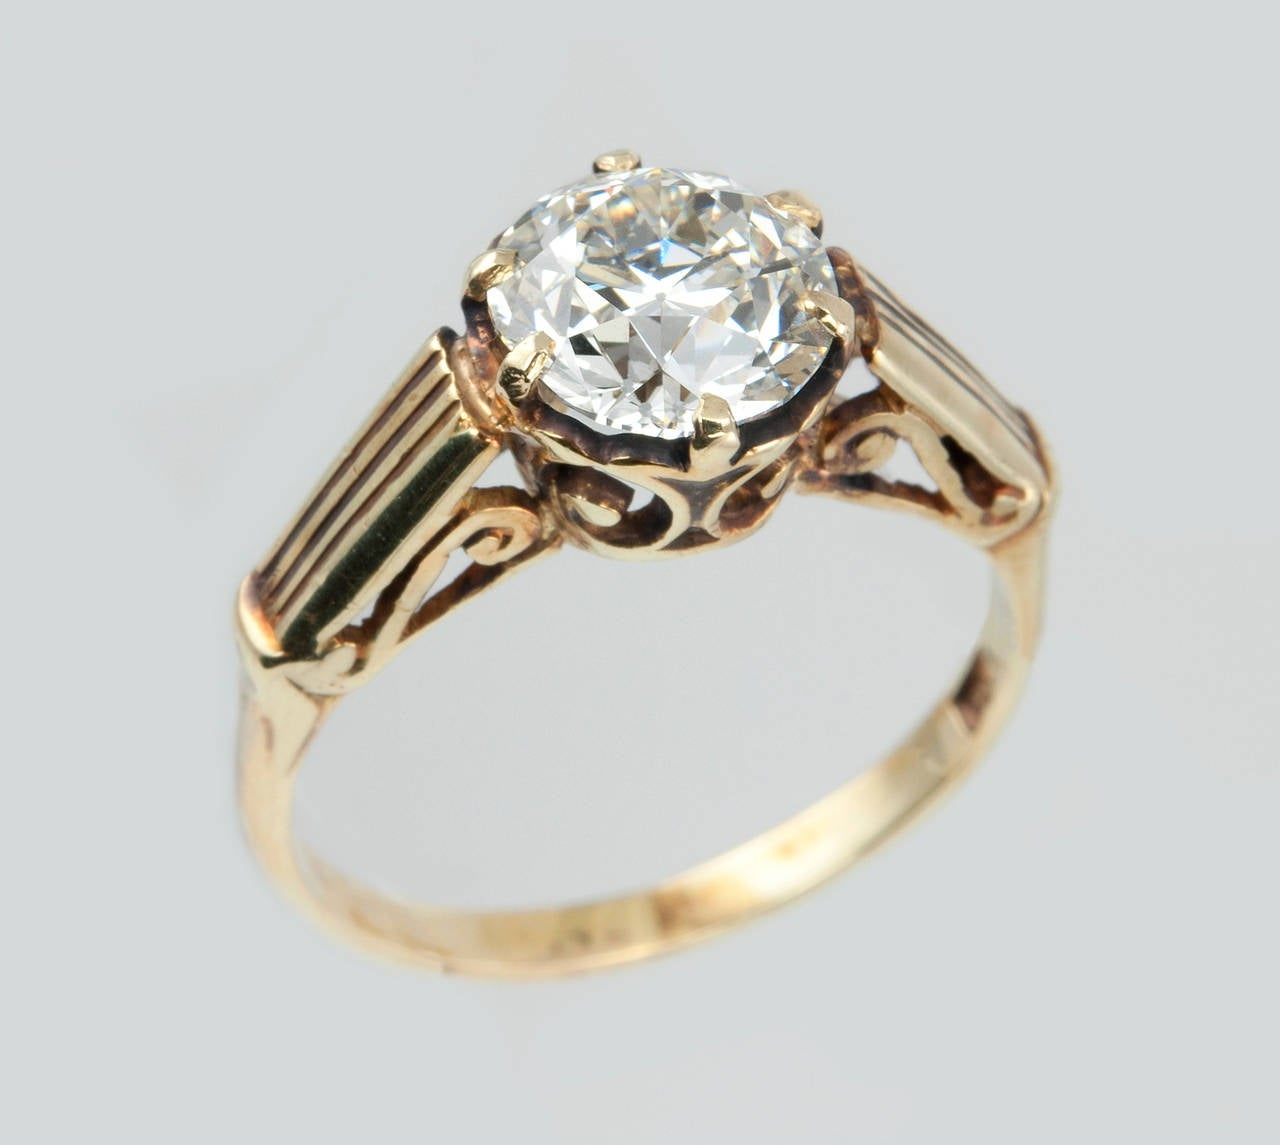 160 Carat Victorian Diamond Solitaire Engagement Ring 2